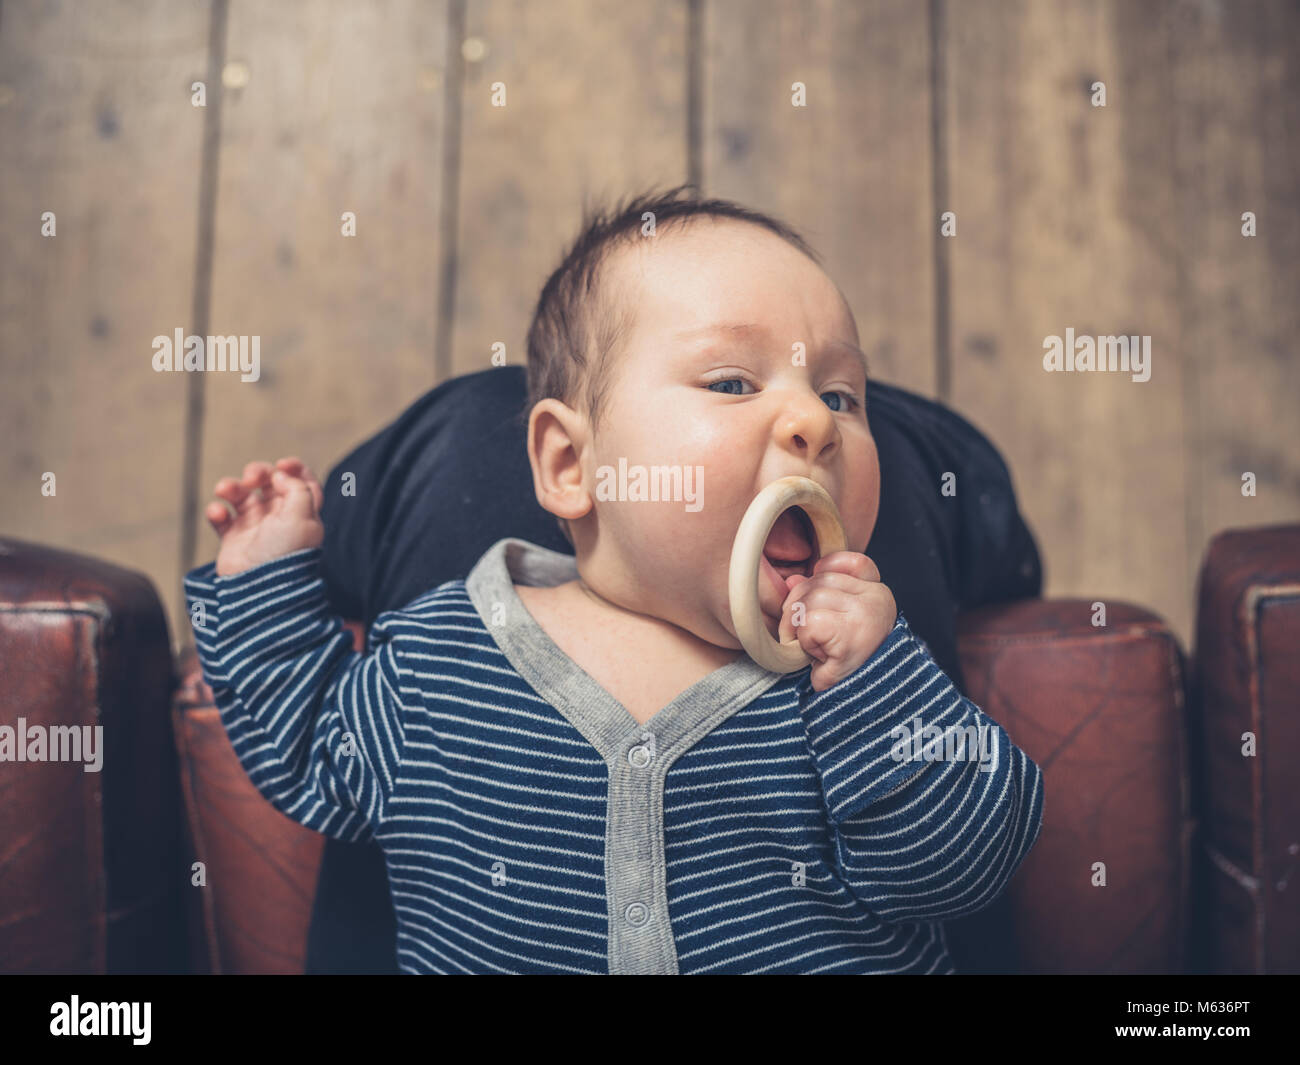 A little baby is chewing on a teething ring - Stock Image